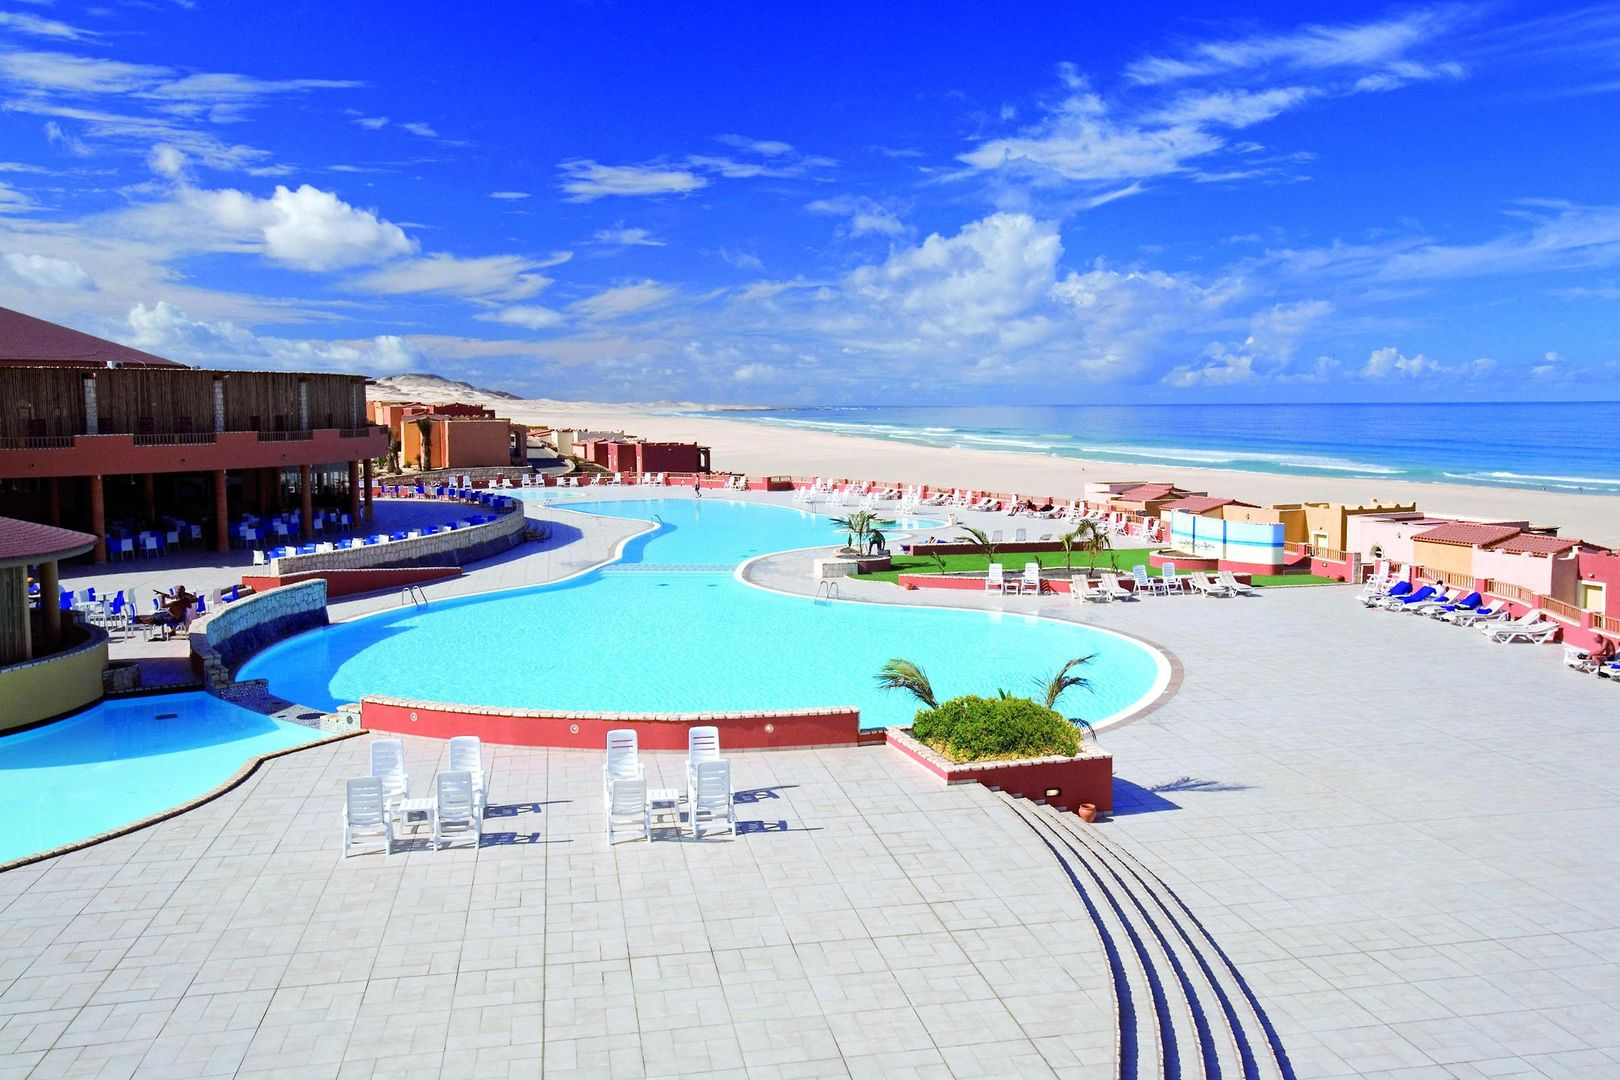 Hotel Royal Horizons Boa Vista